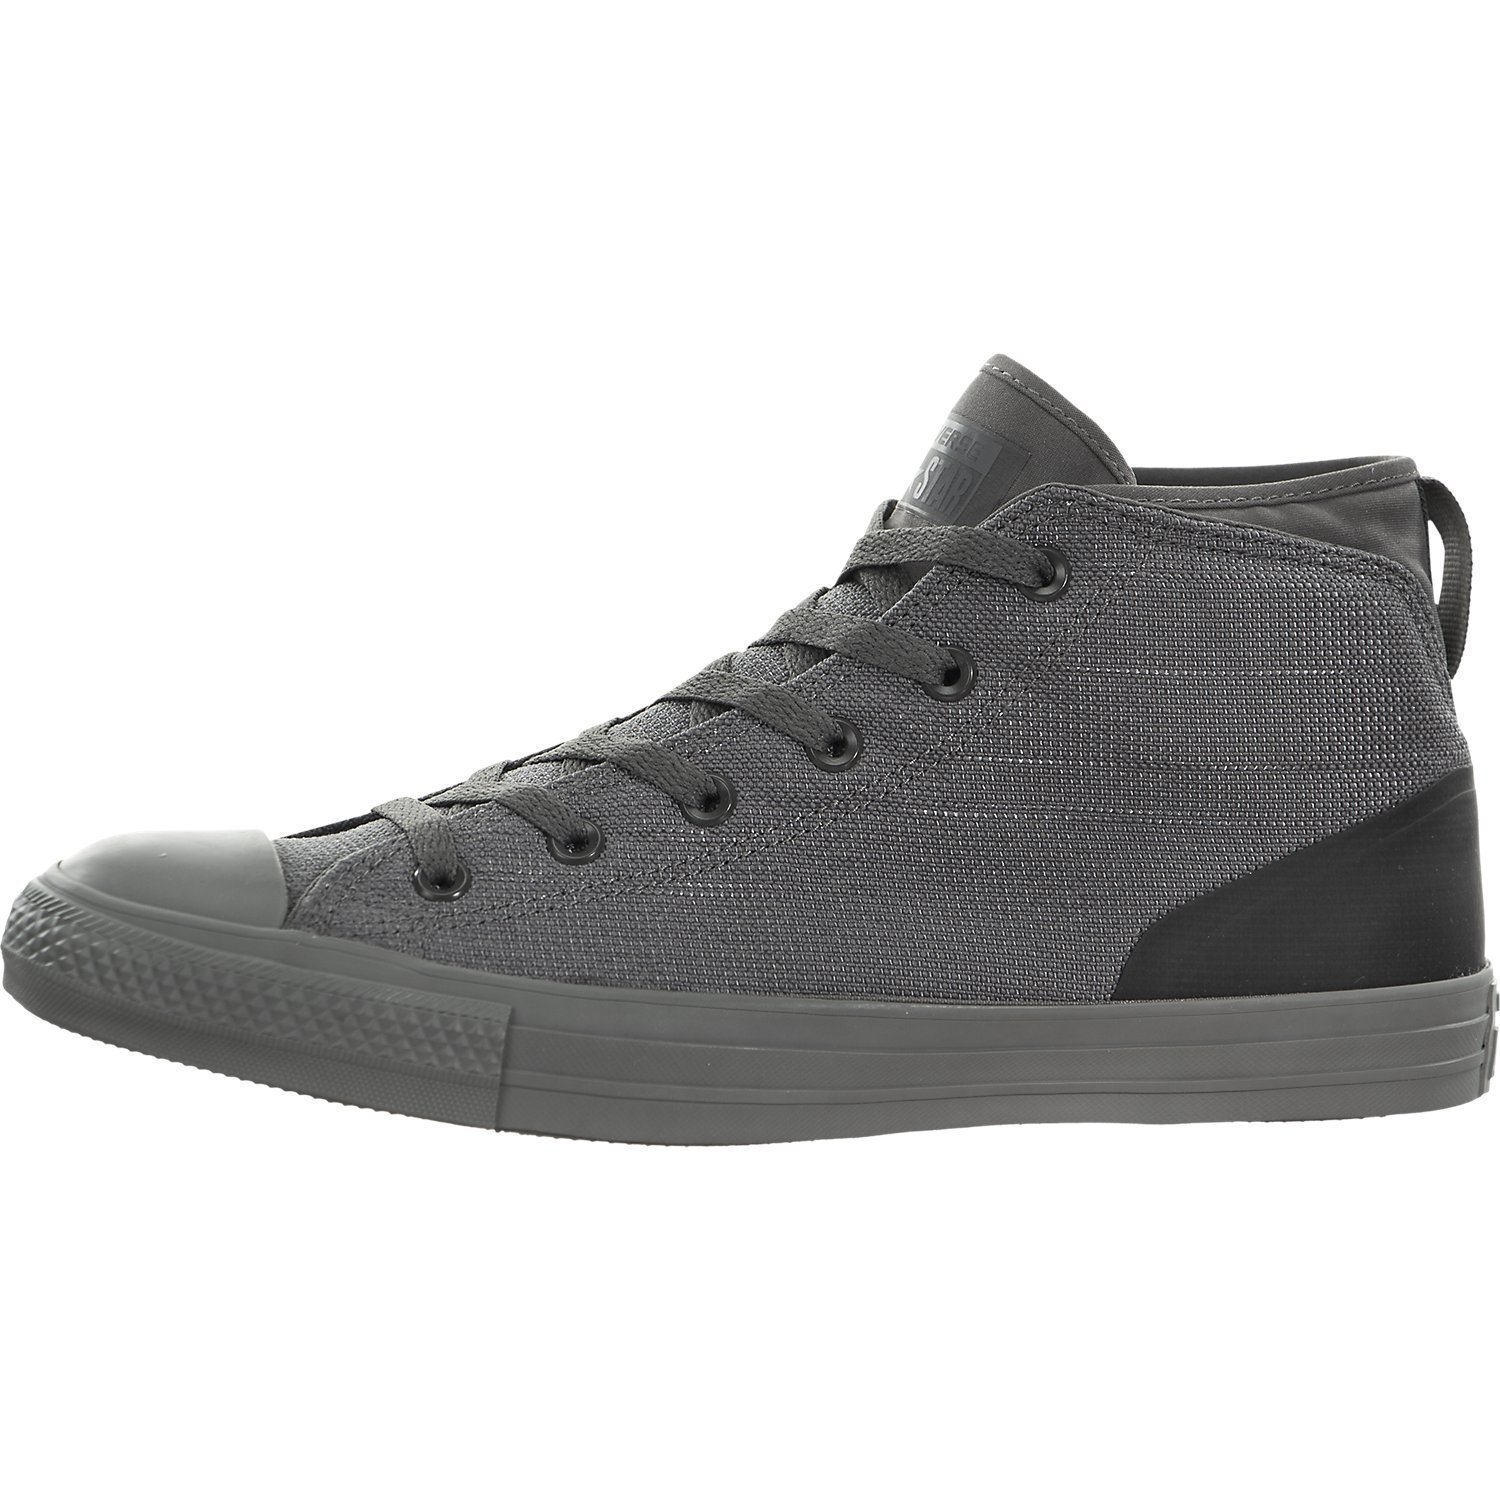 0d734805a61c Converse Unisex Chuck Taylor All Star Syde Street Mid Sneaker…